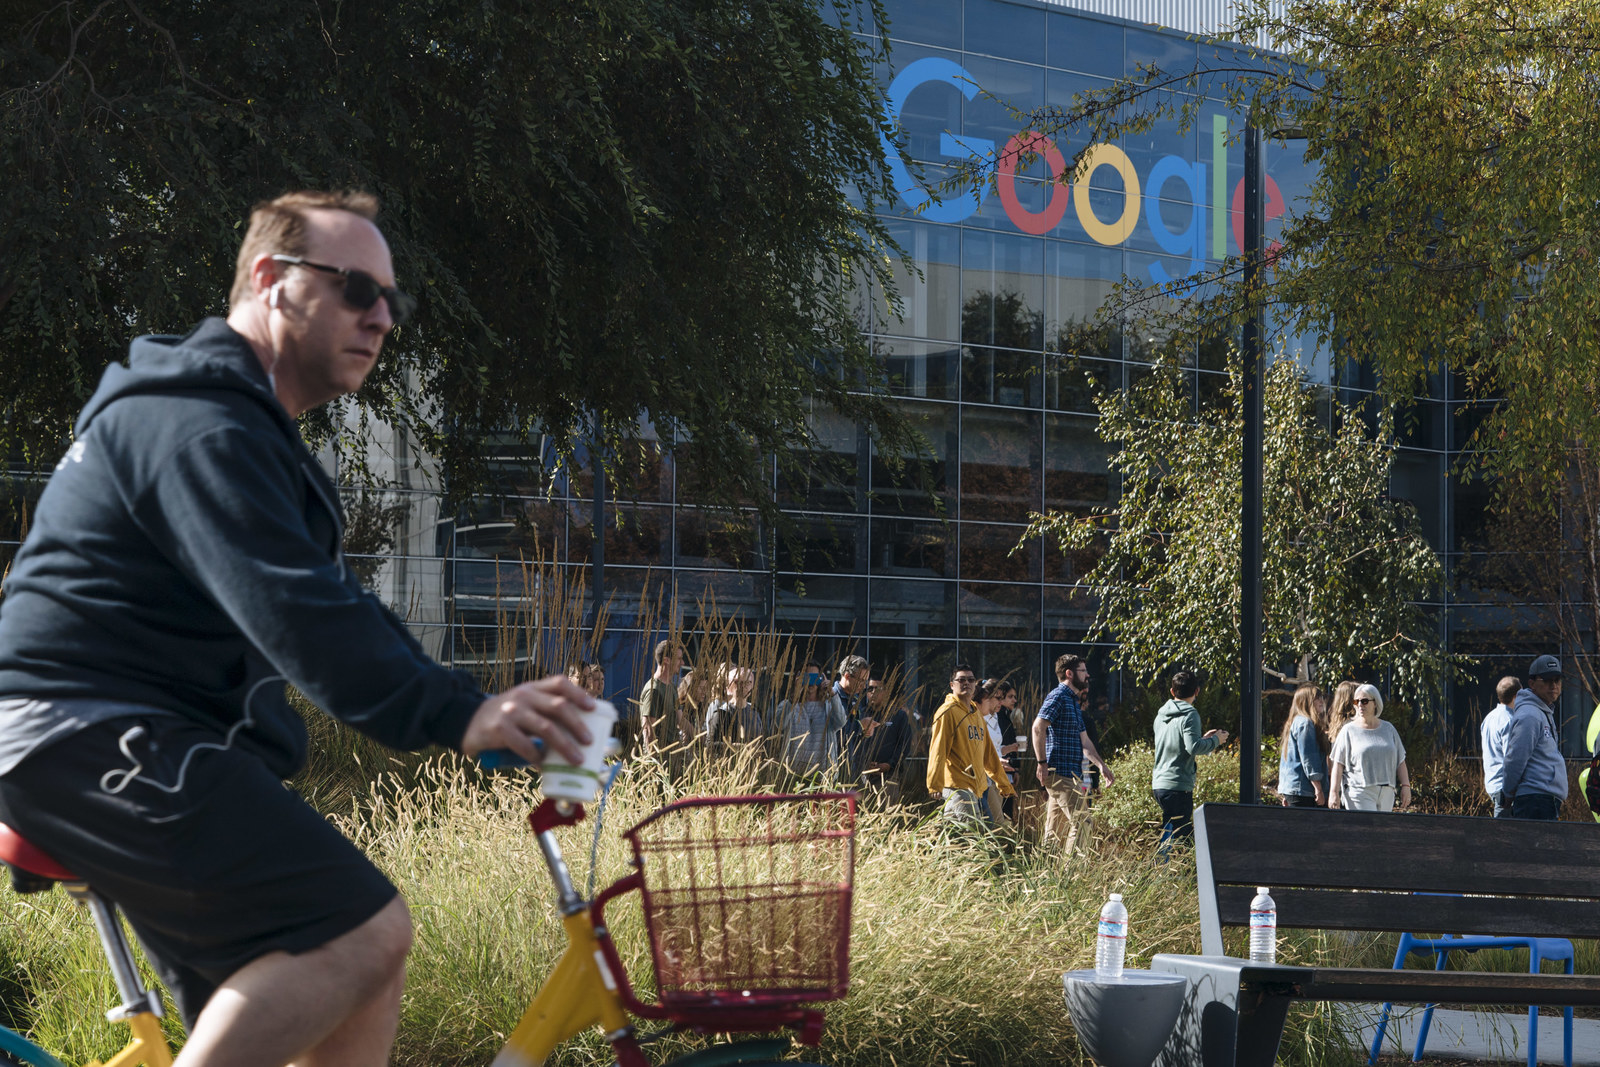 Google employees walk off the job to protest the company's handling of sexual misconduct claims on November 1, 2018, in Mountain View, California.